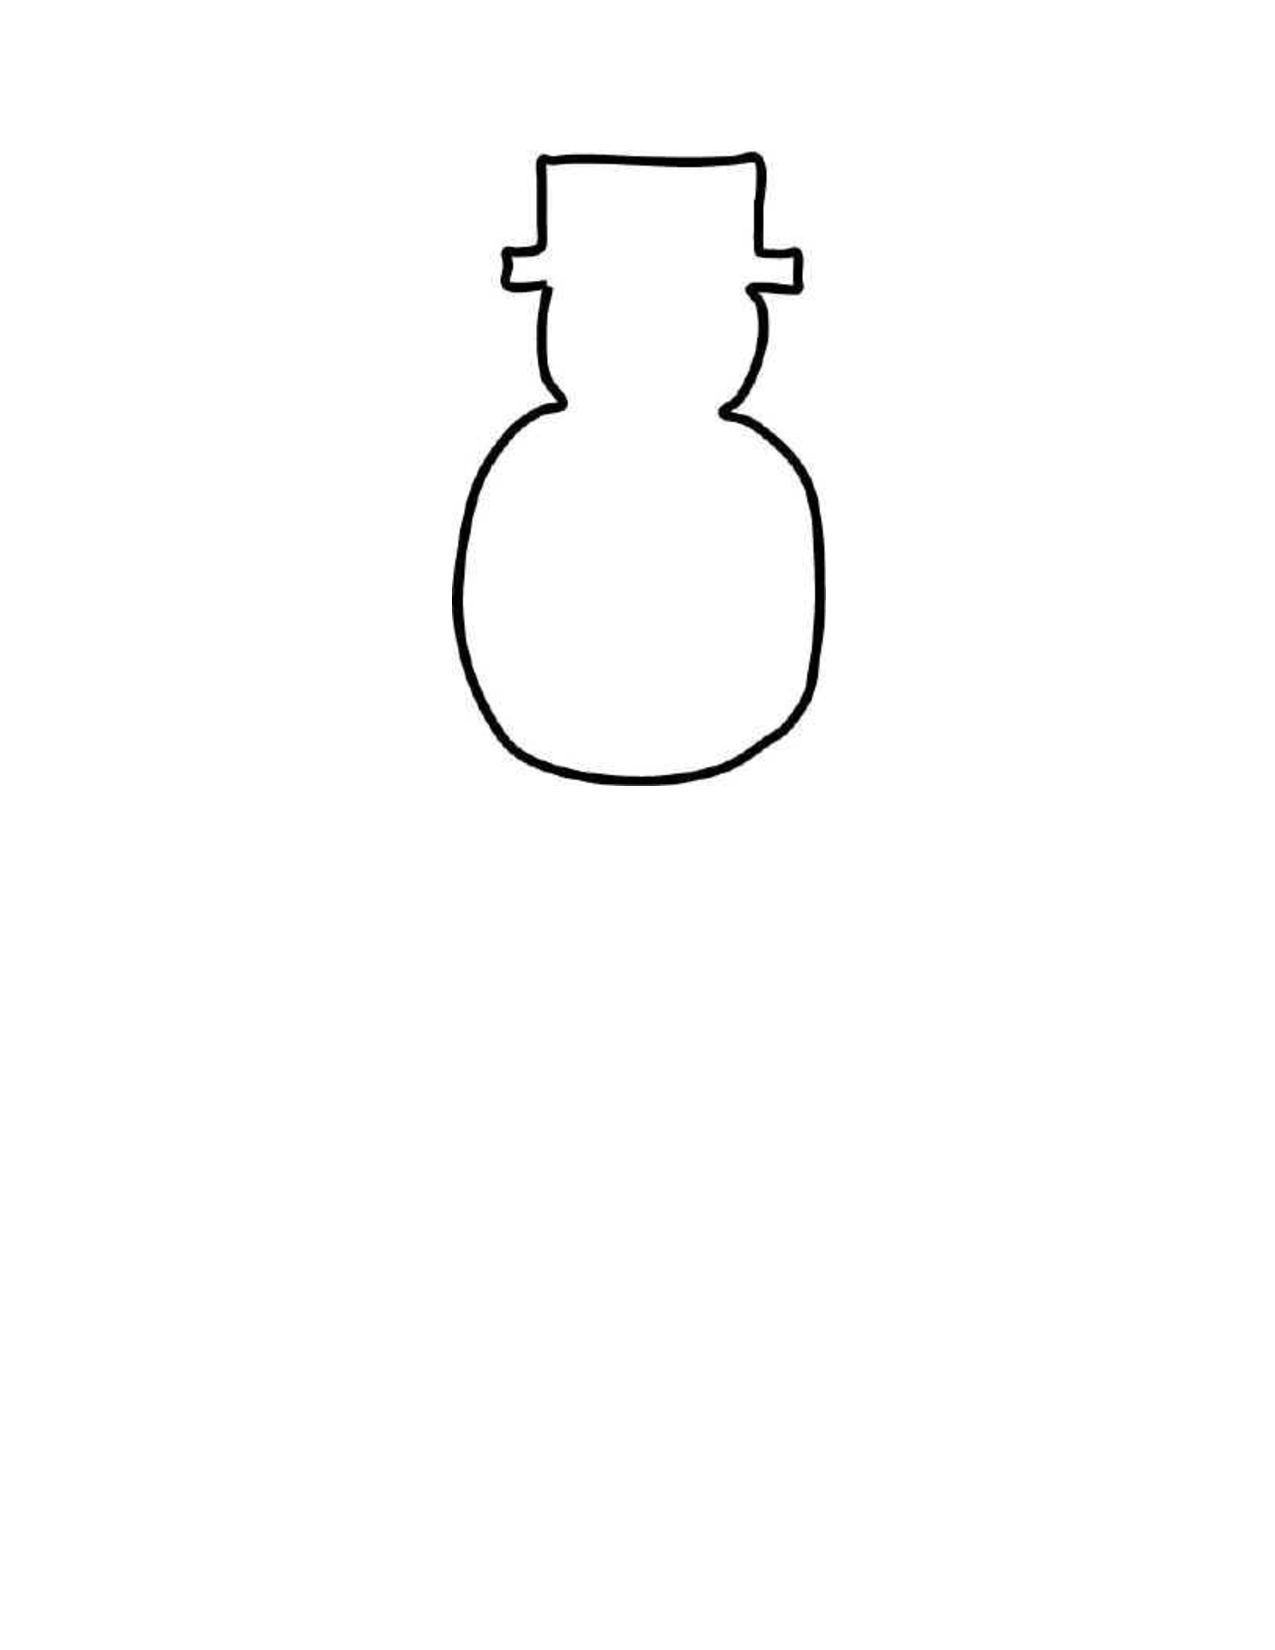 Blank Snowman Template - ClipArt Best